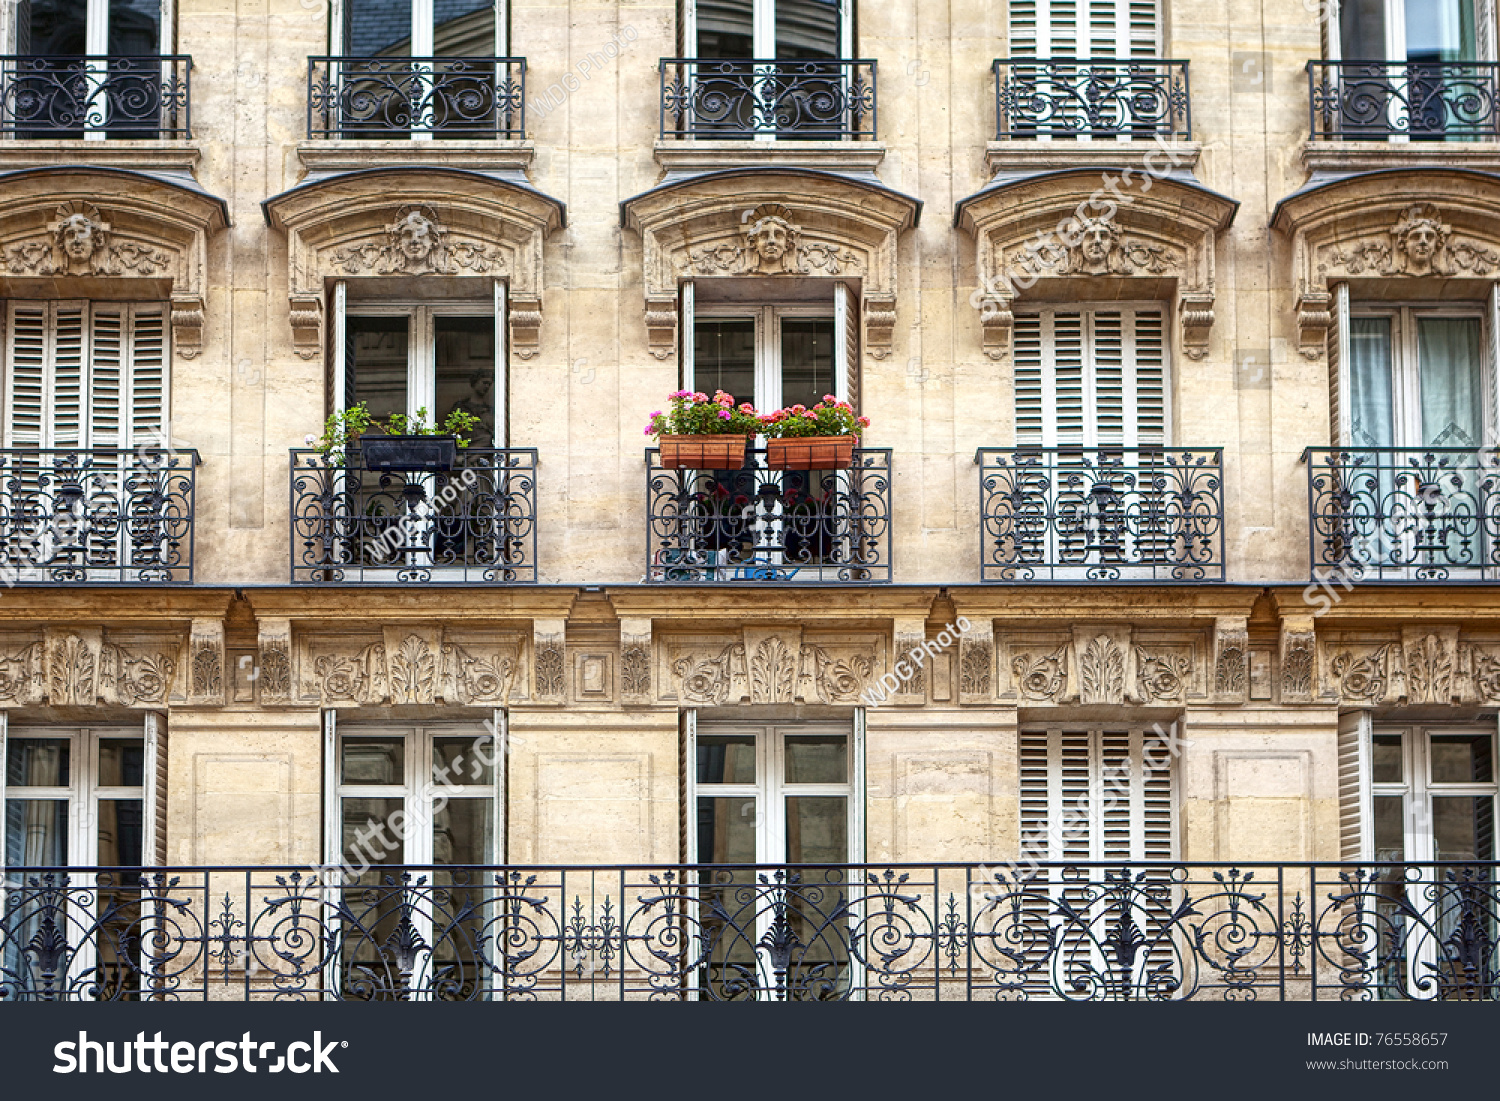 Apartment Building Balcony Fotka Shutterstock